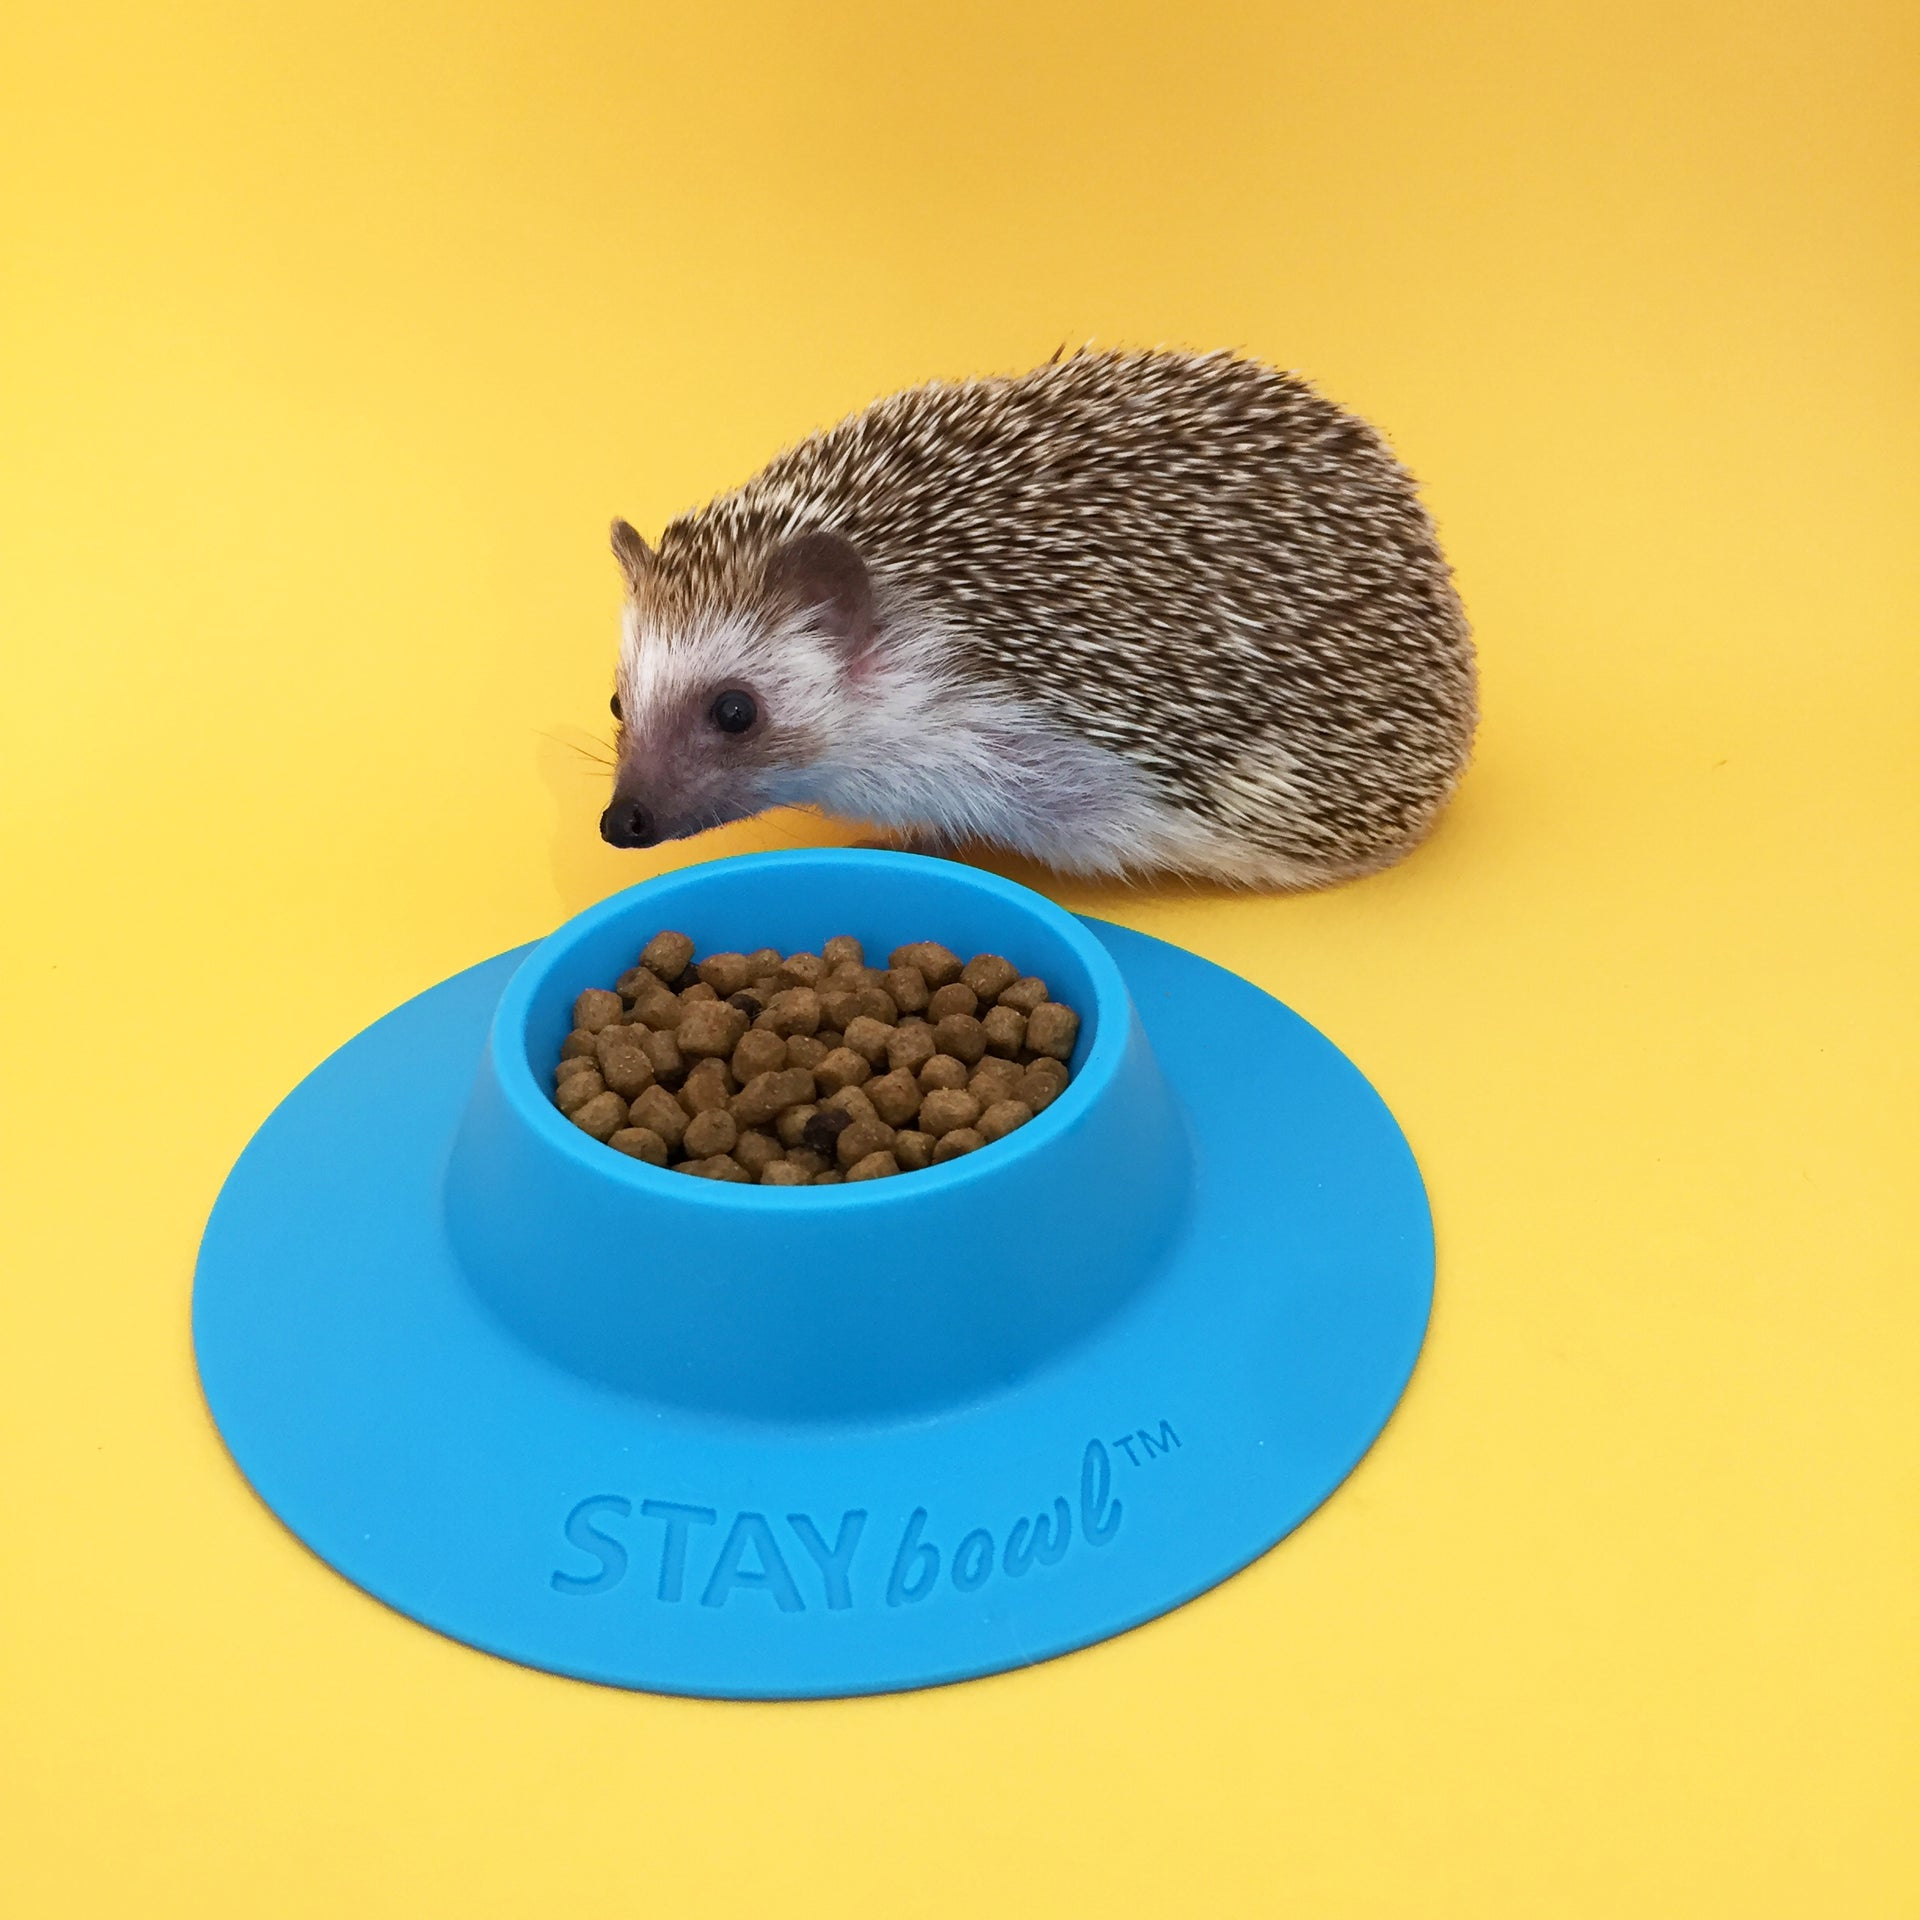 STAYbowl® Tip-proof Food Bowl